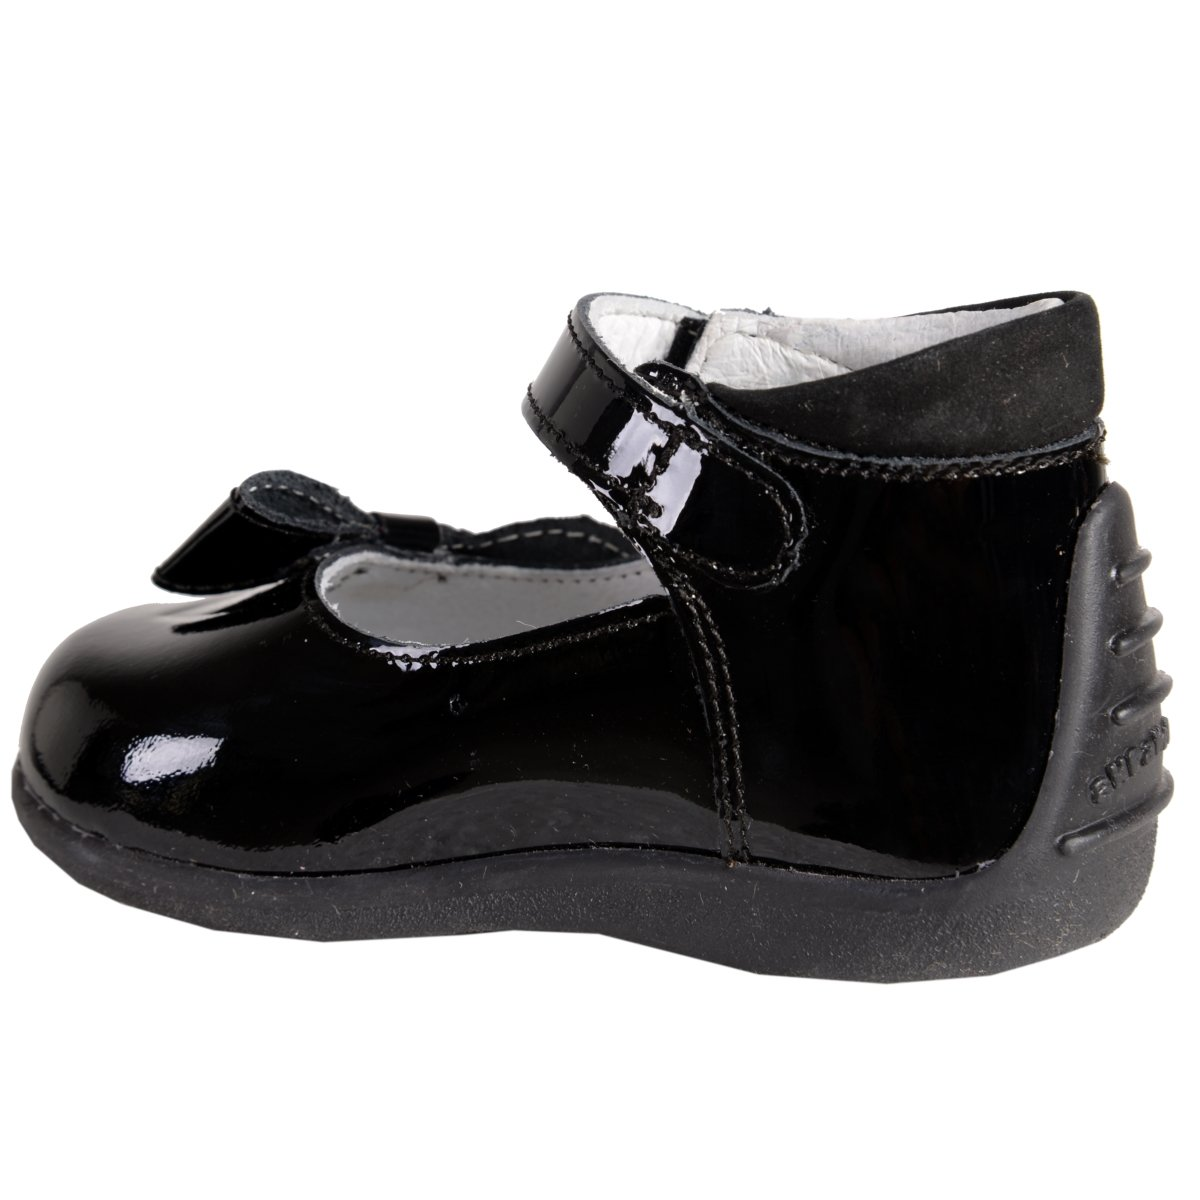 Zapato mery jane 12 15 sears com mx me for Servicio tecnico jane